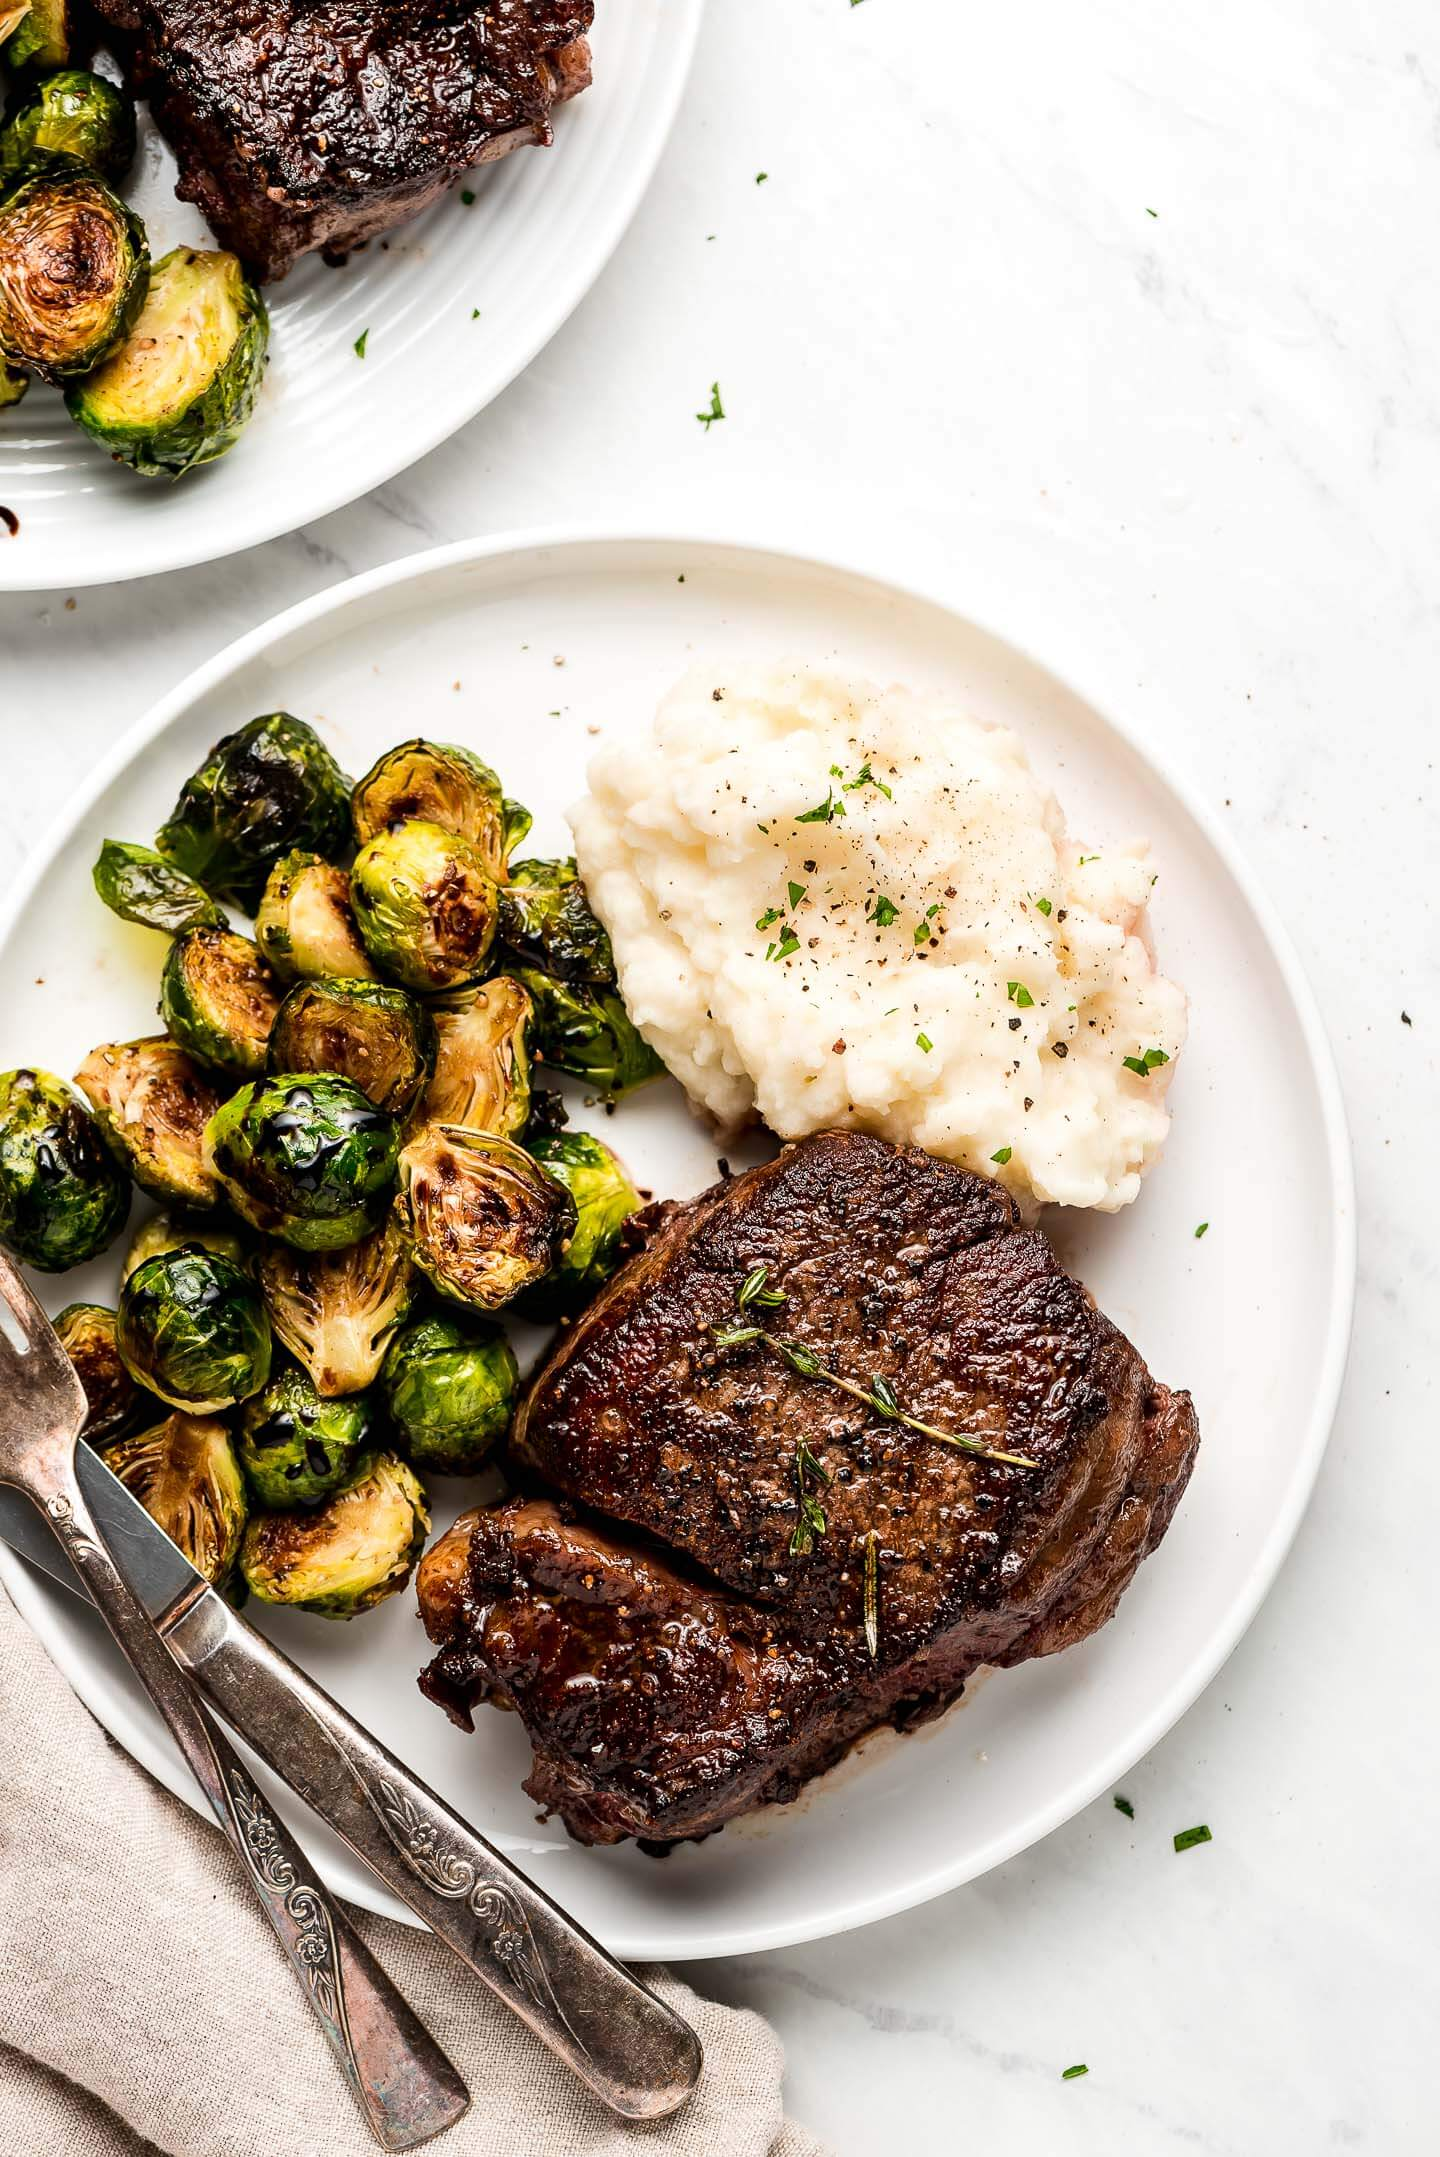 Filet Mignon Steak, mashed potatoes, and roasted brussels sprouts on a plate.